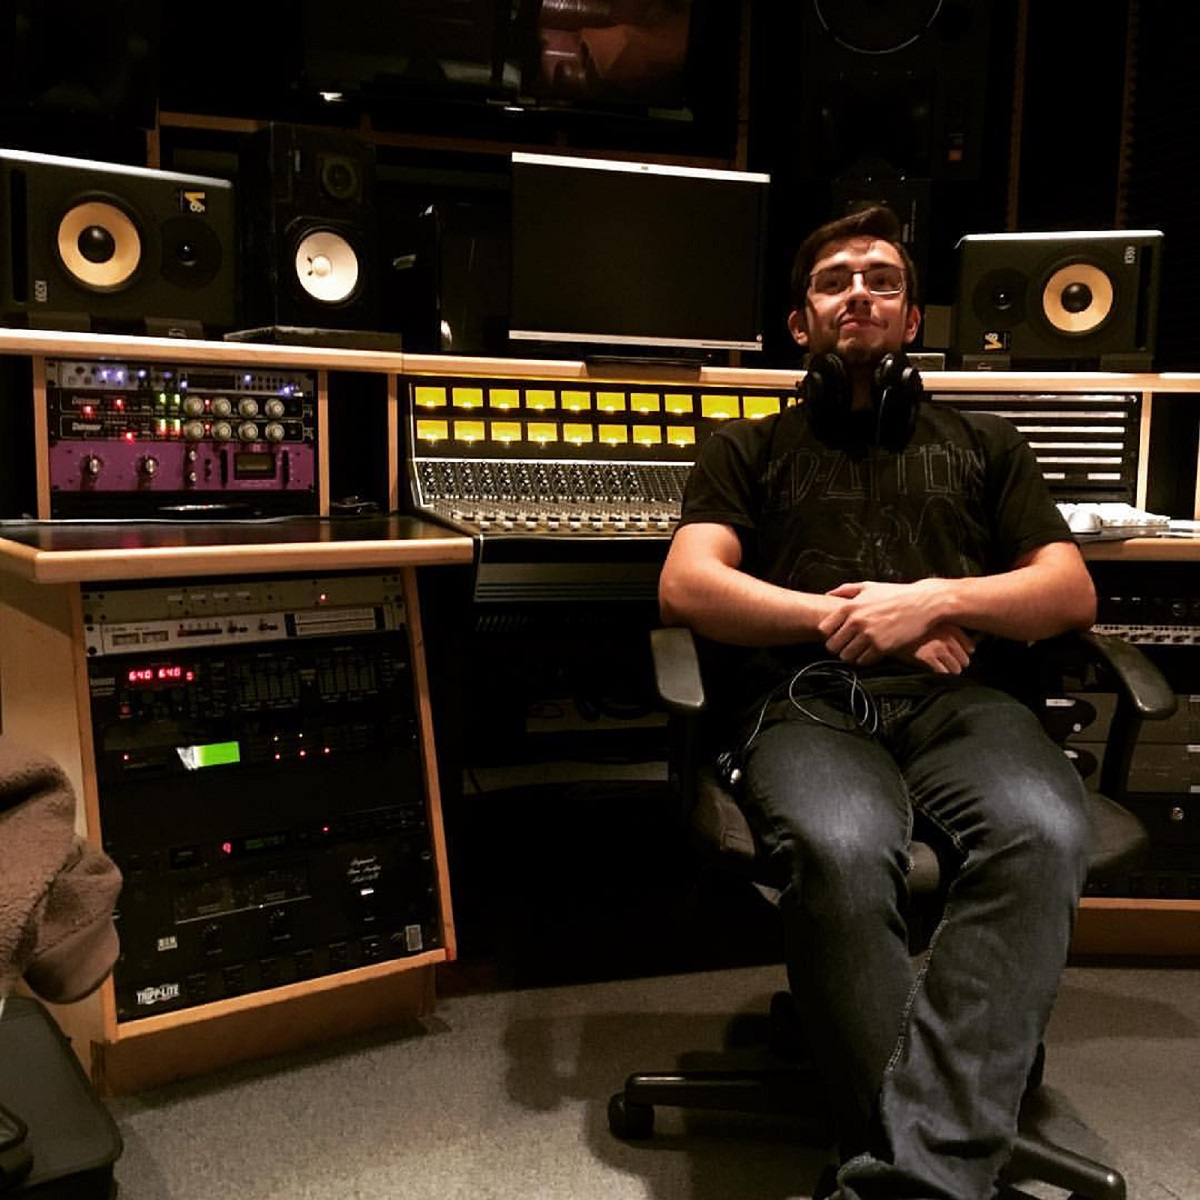 Jeff Miers: A young Buffalo musician and sound engineer unpacks my vinyl obsession